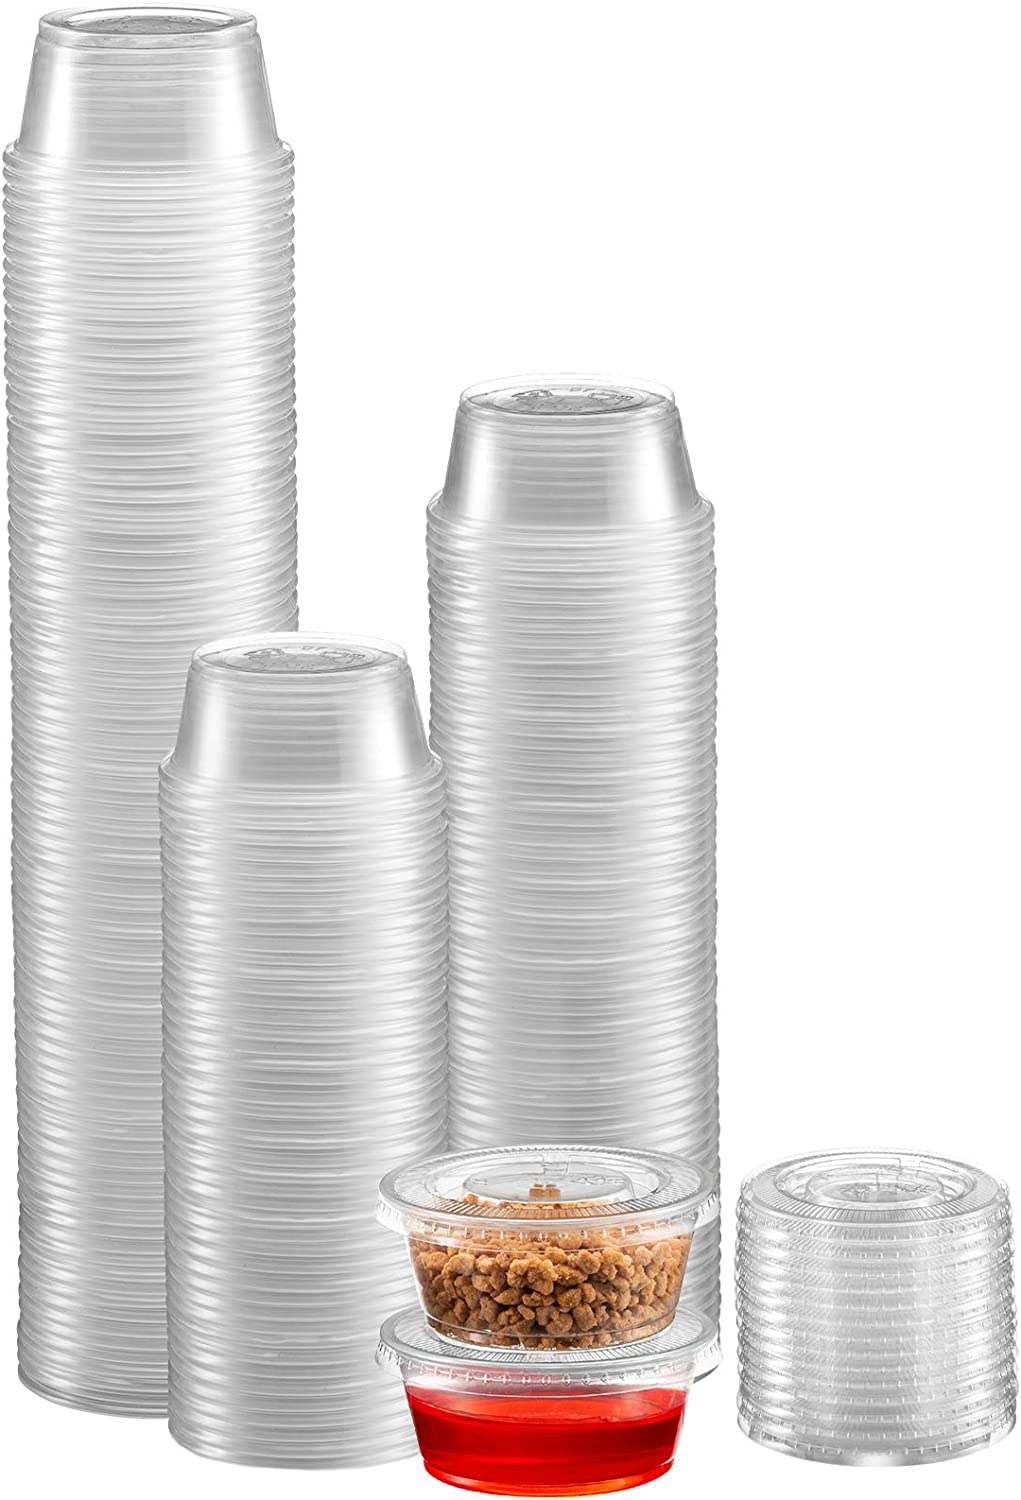 Zeml Portion Cups with Lids (2 Ounces, 100 Pack)   Disposable Plastic Cups for Meal Prep, Portion Control, Salad Dressing, Jello Shots, Slime & Medicine   Premium Small Plastic Condiment Container